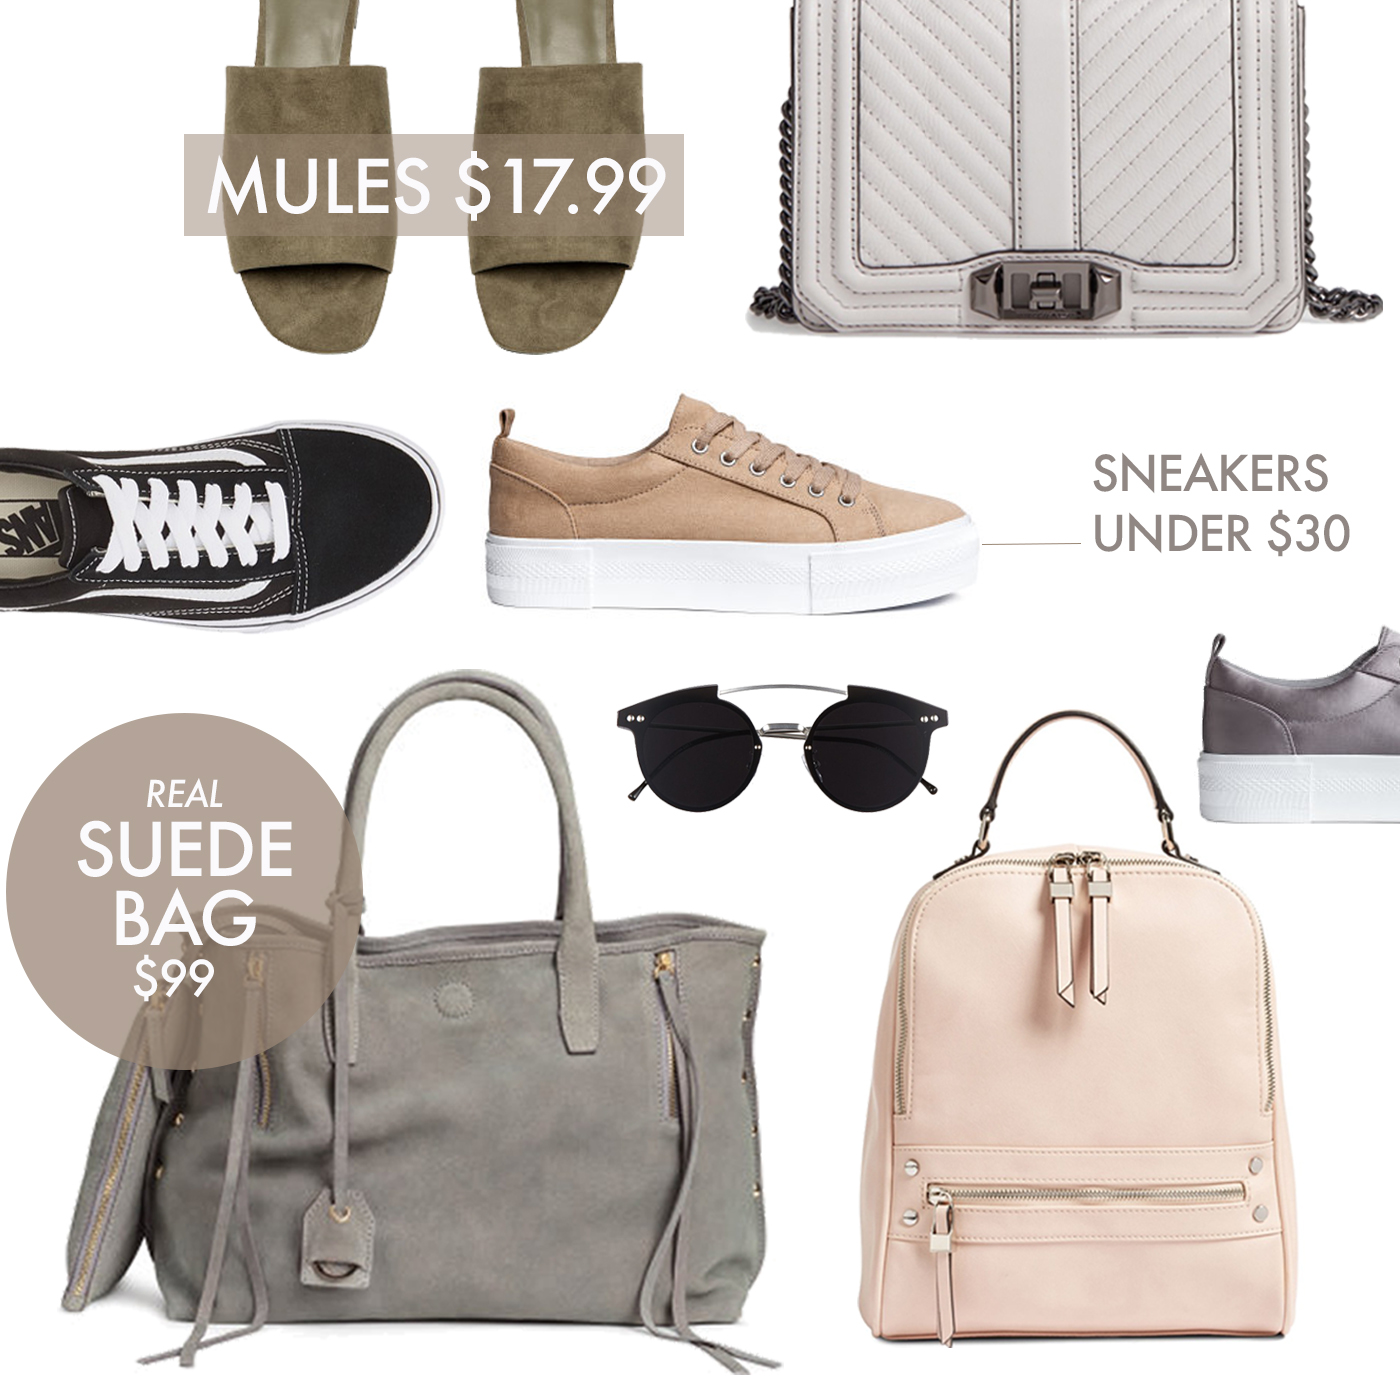 Spring Accessories Under $100 | The Fancy Pants Report